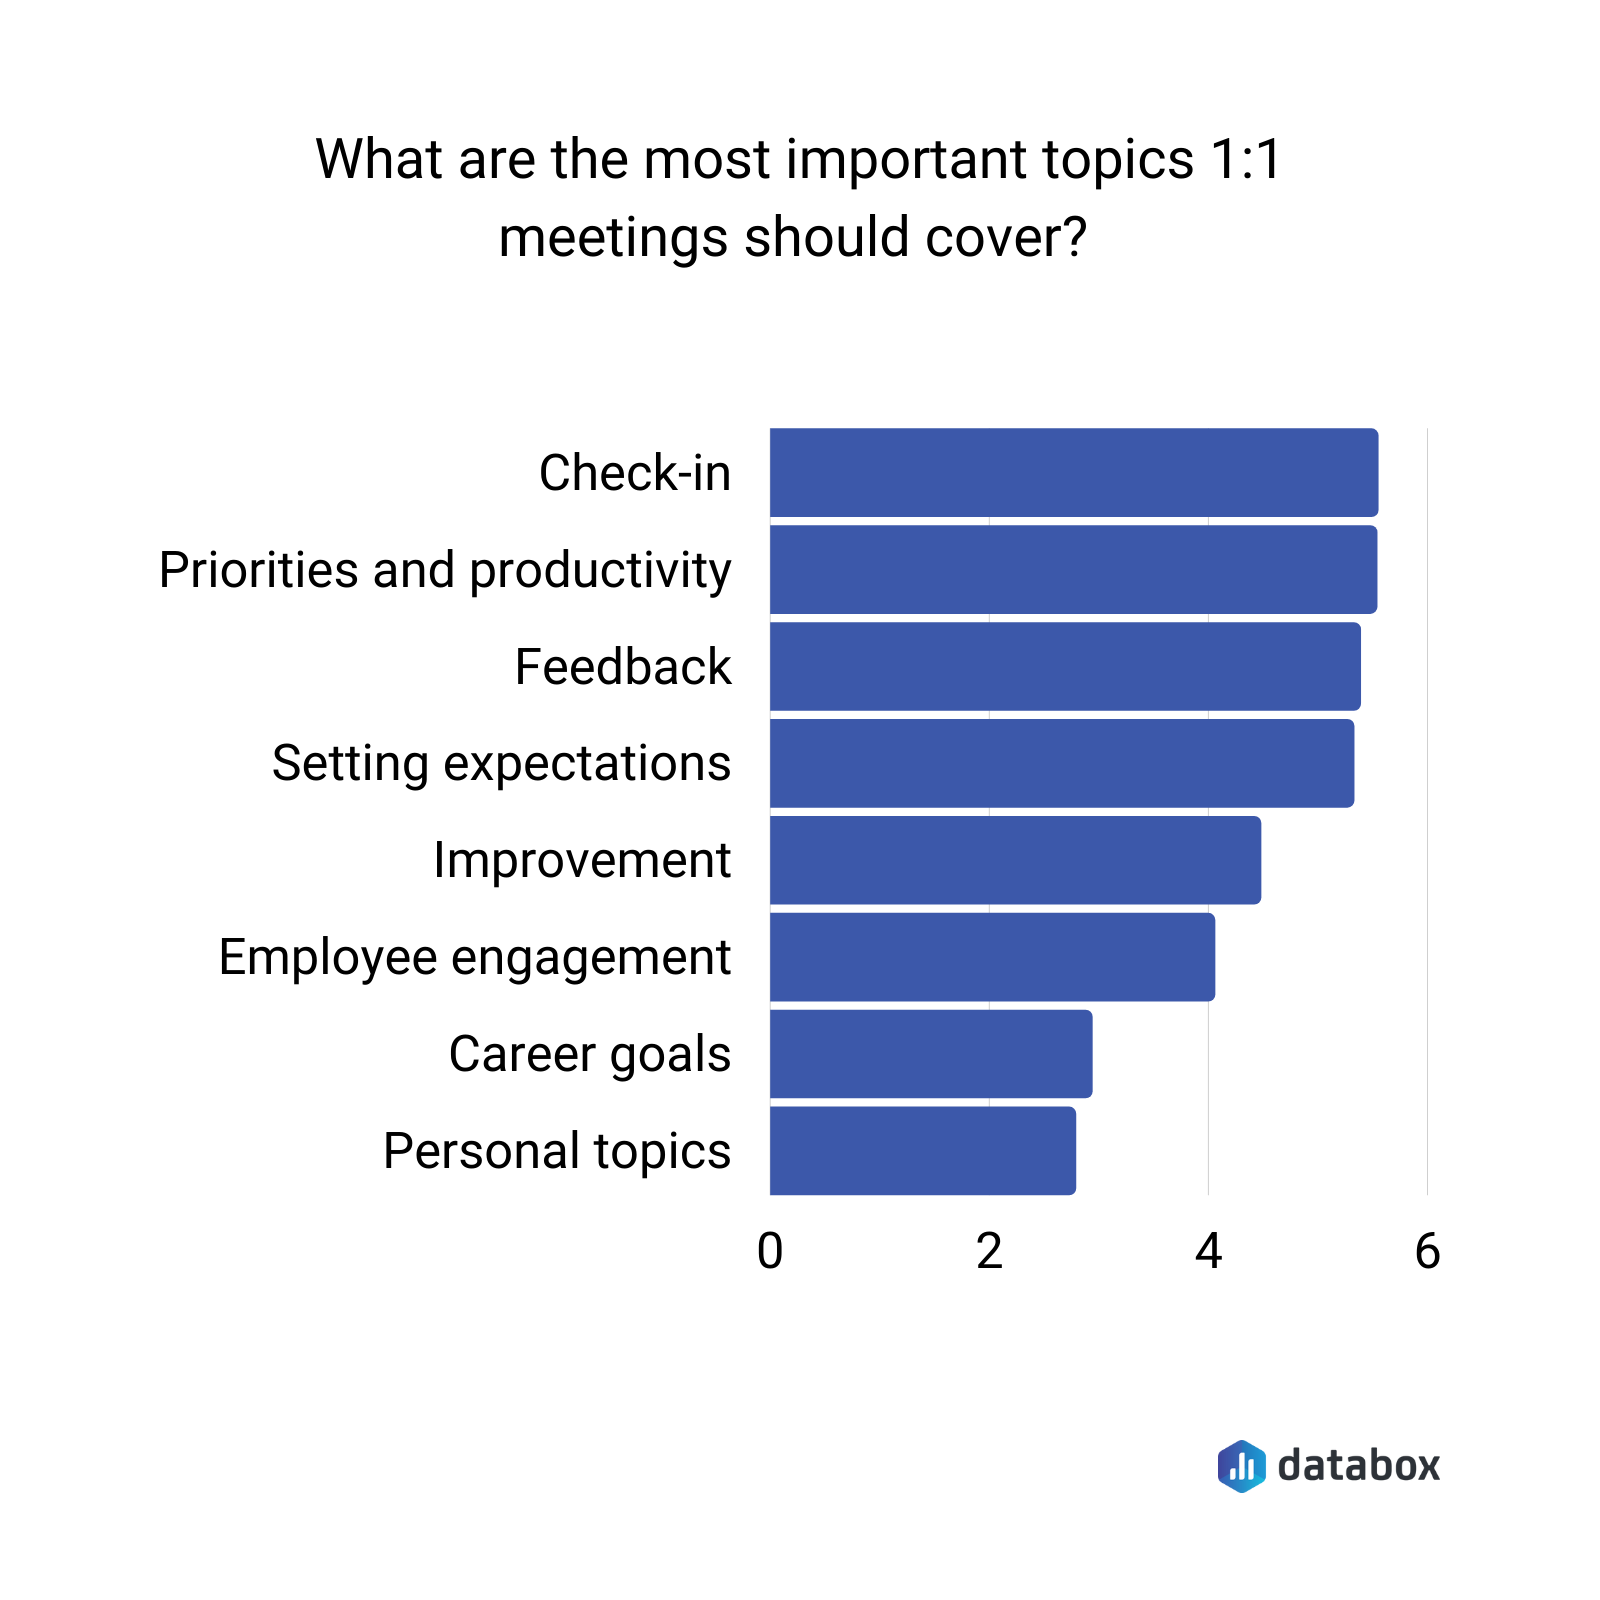 What Are the Most Important 1:1 Meeting Topics?